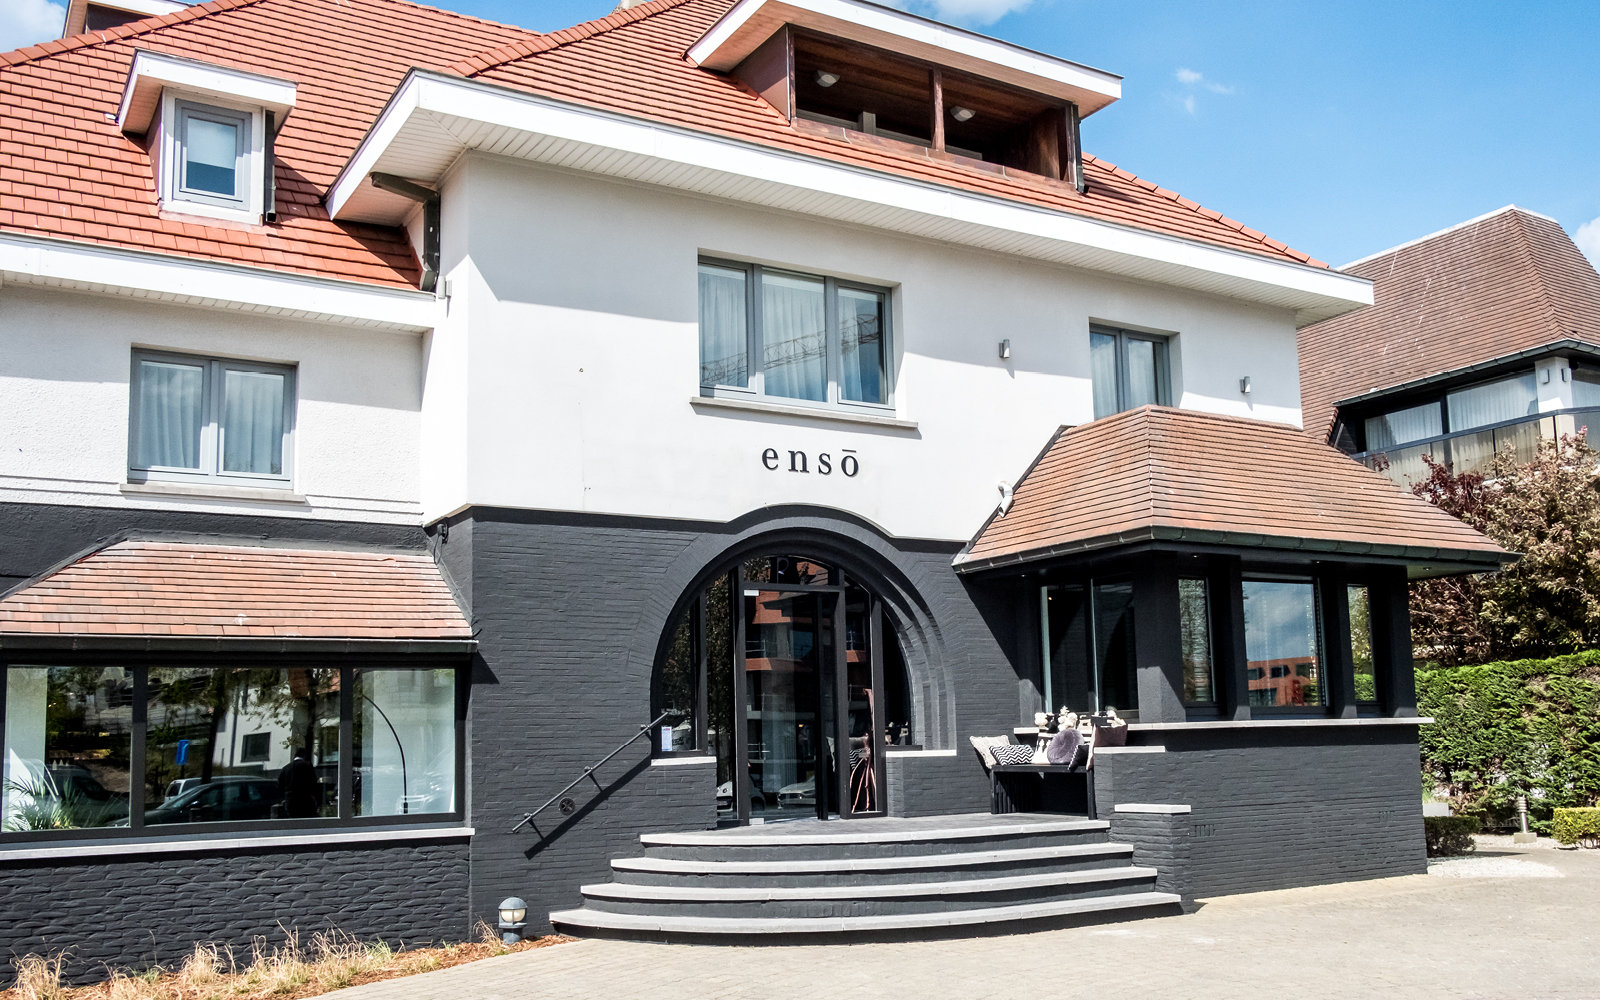 Enso Boutique Hotel